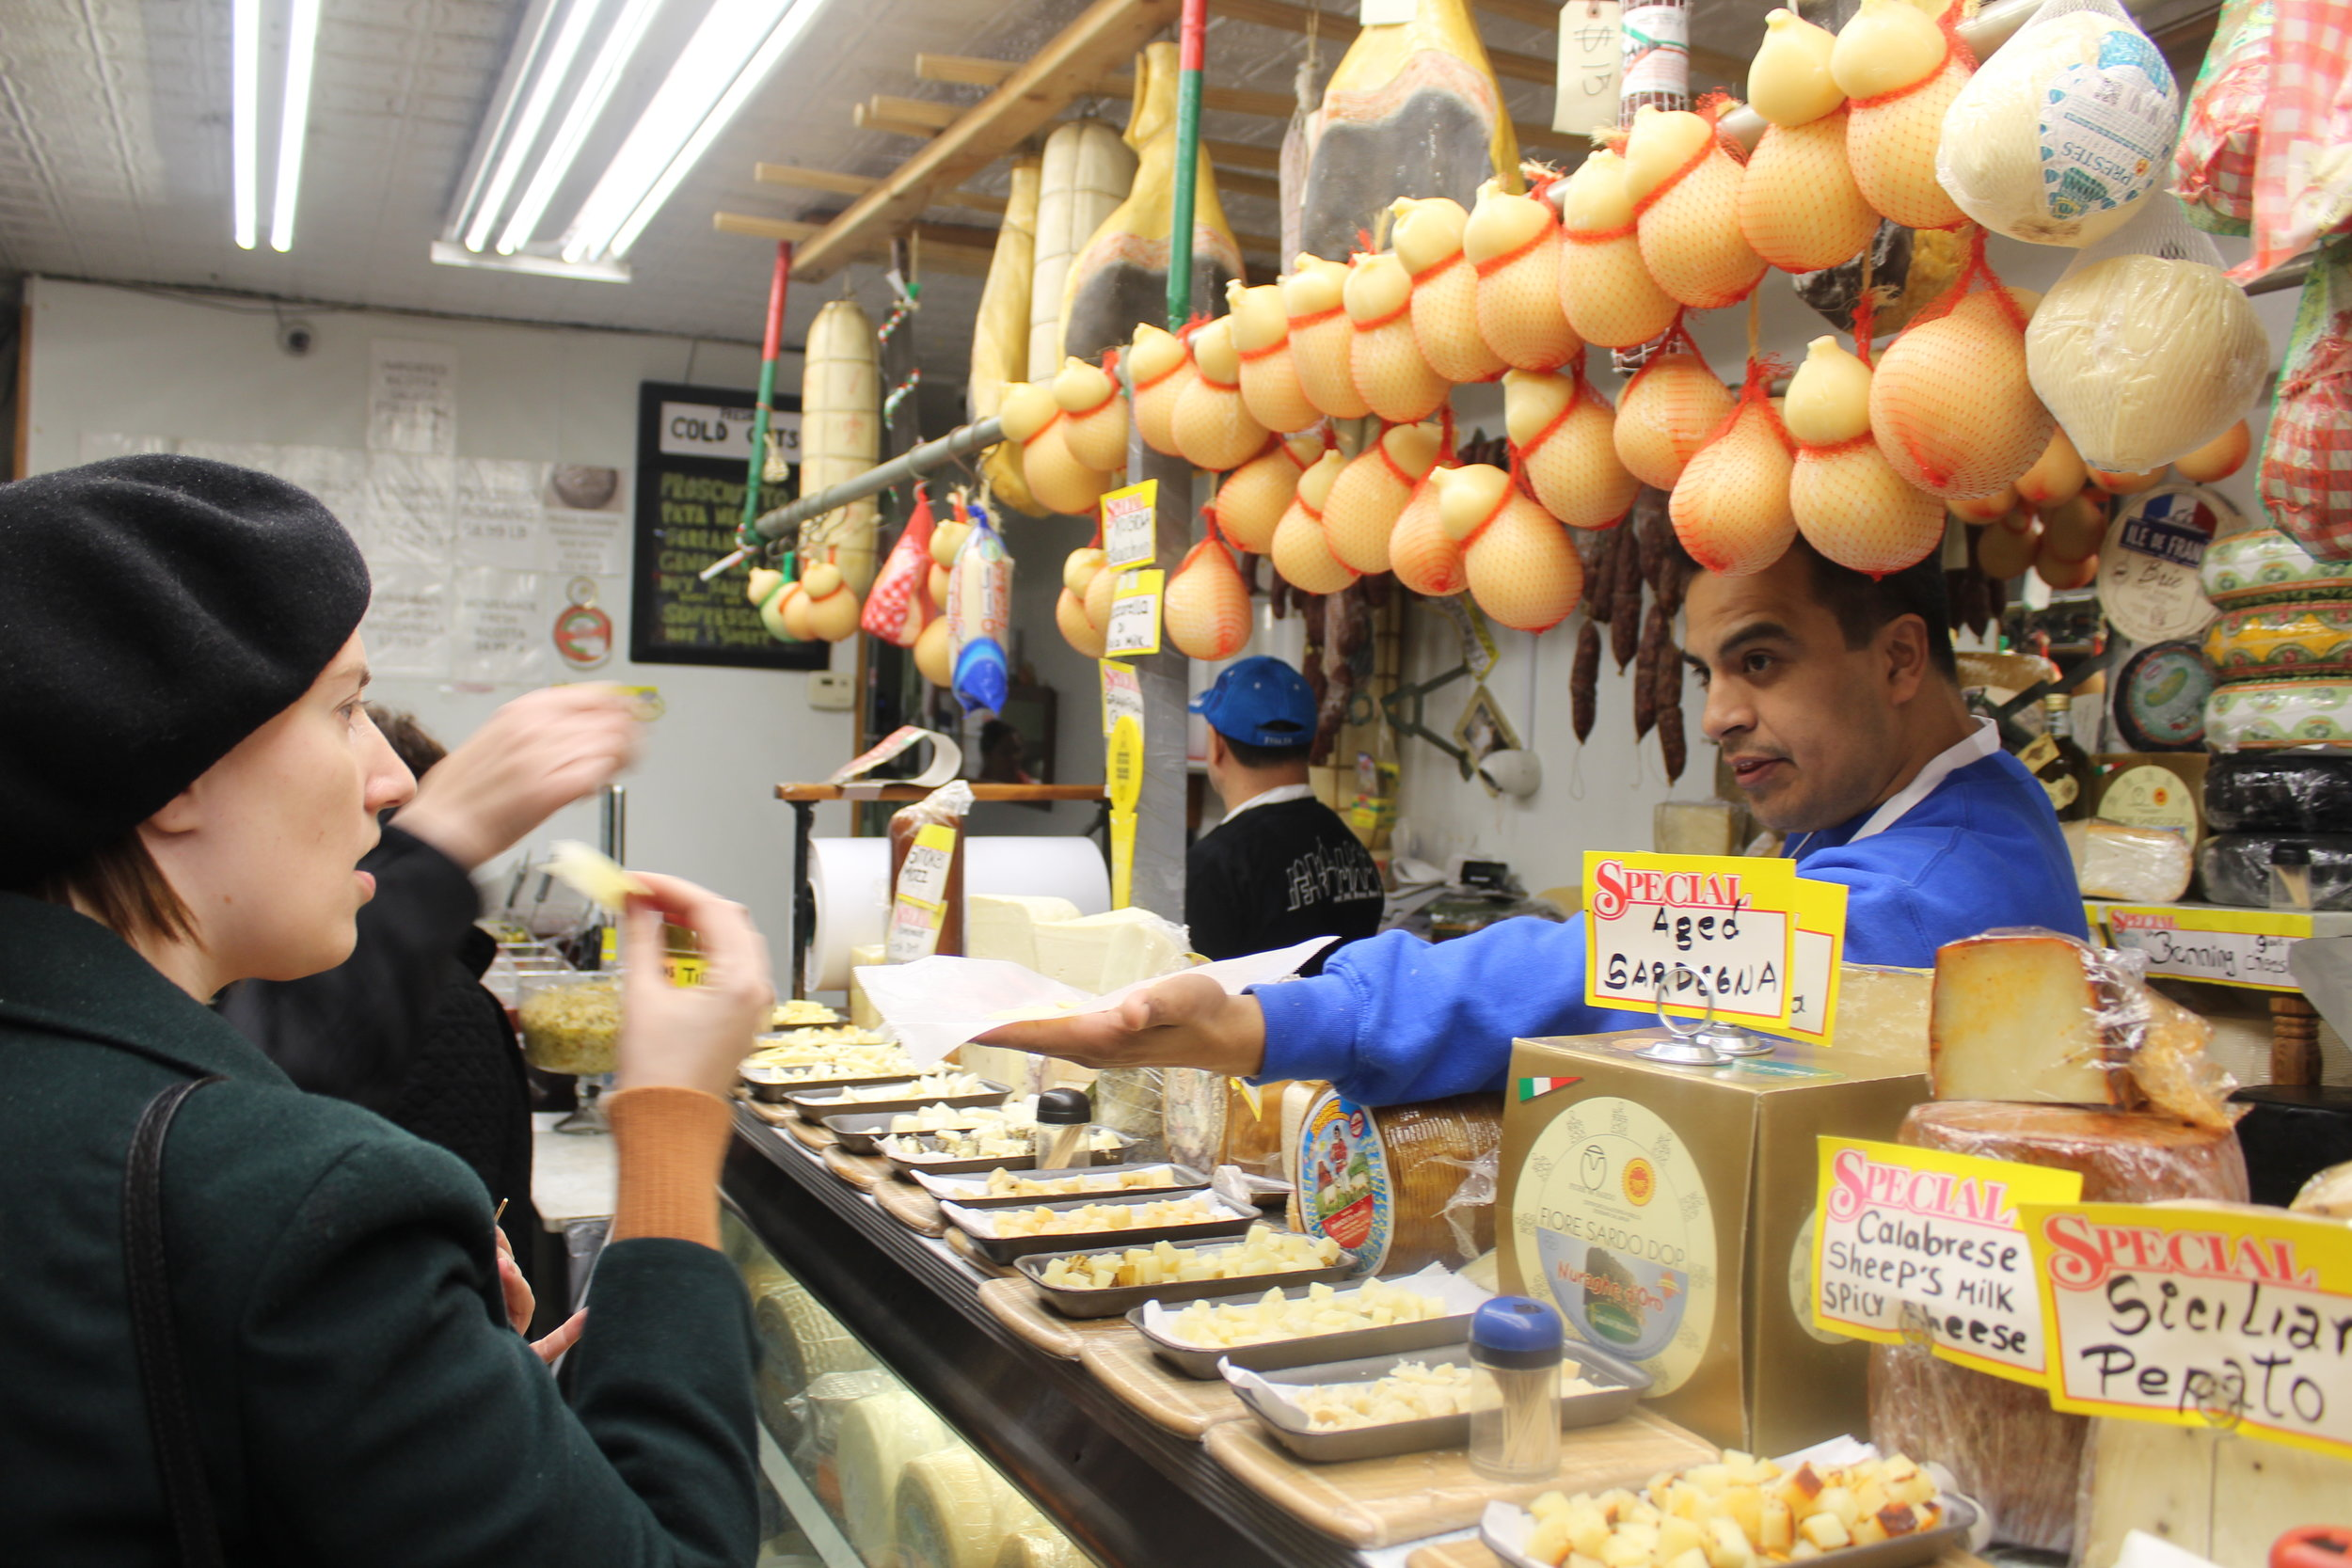 Abram, a former chef offers samples of caciocavallo cheese (shown in the red netting) to our tour guests at Calandra's.